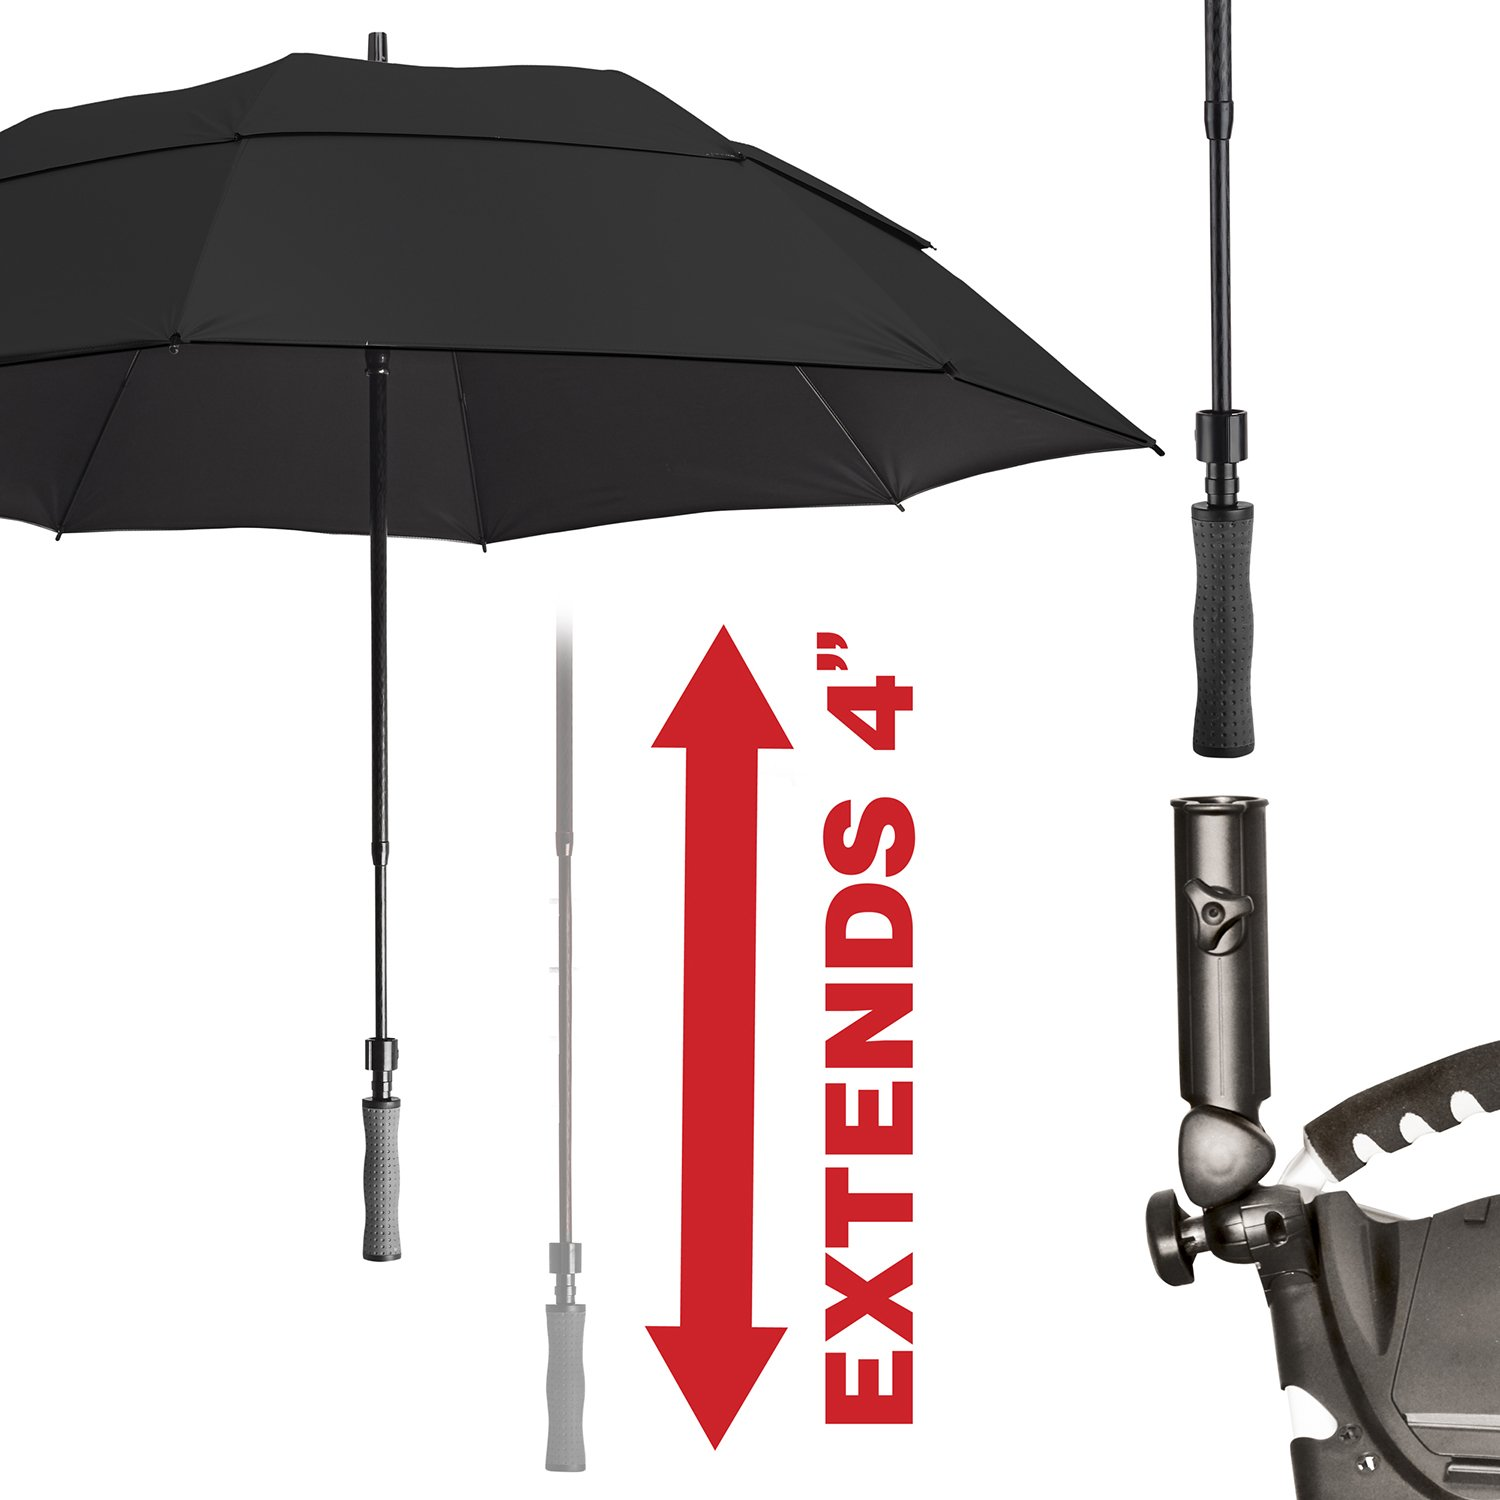 Bag Boy Golf- 62 Telescoping UV Umbrella